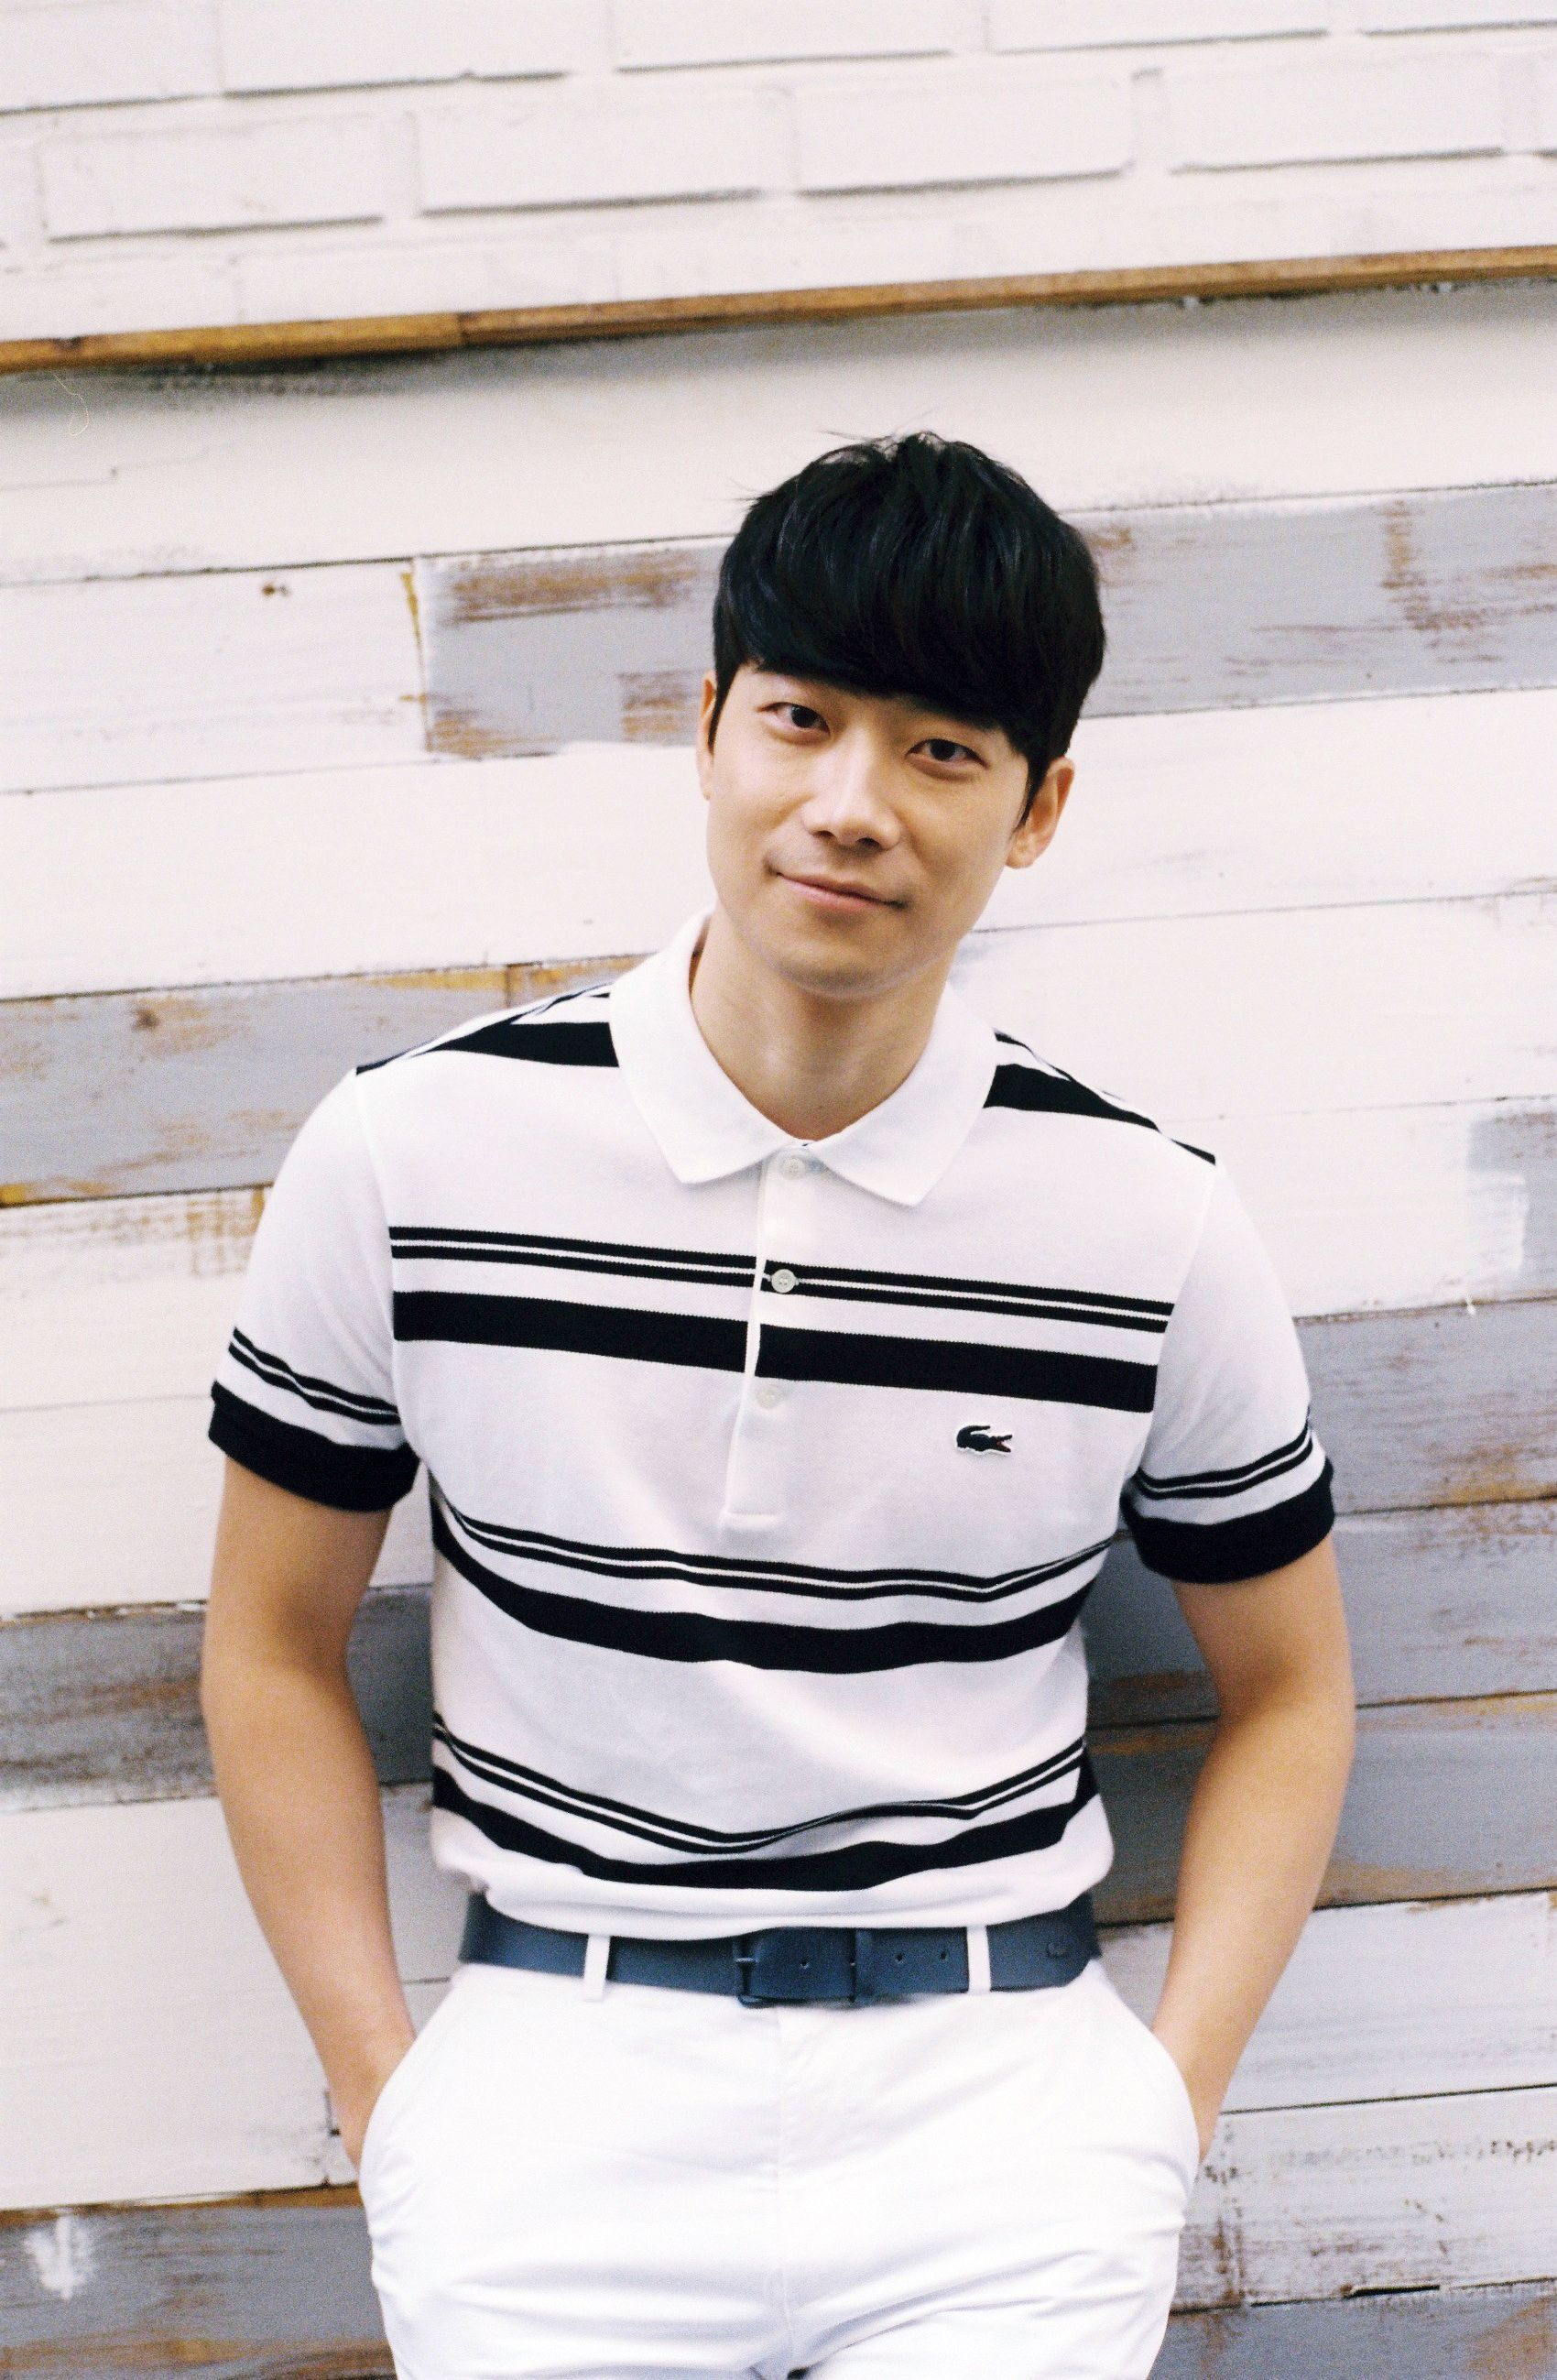 2f7019033b Pianist Han Yoon sporting the striped black and white Slim Fit ...